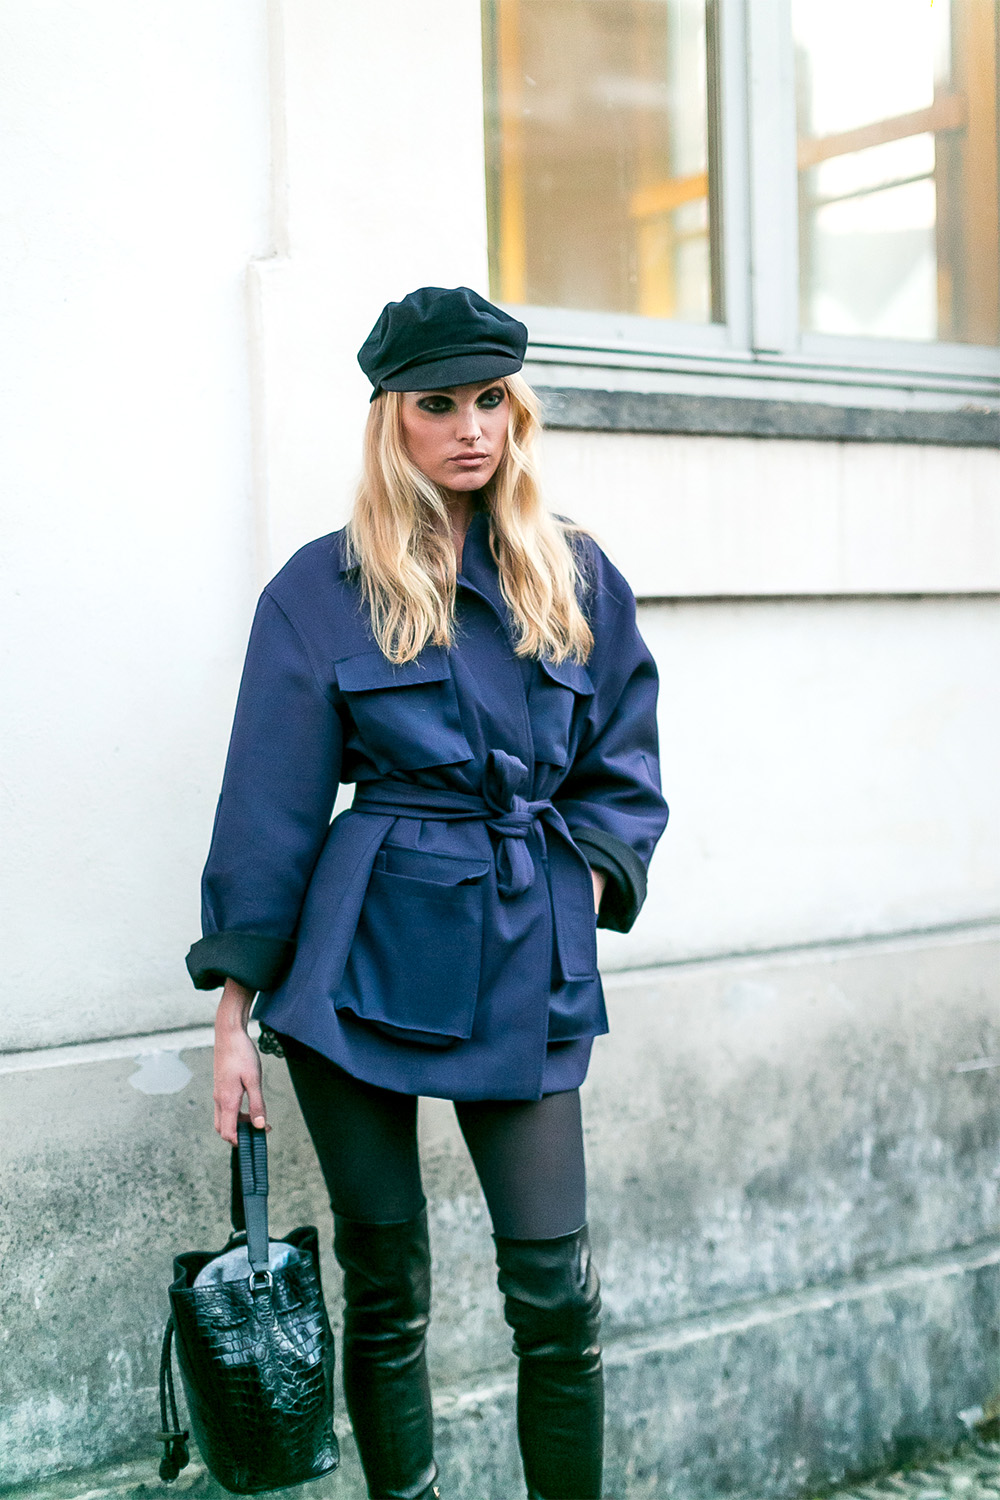 TheList: Elsa Hosk is Your New Go-To Style Inspiration